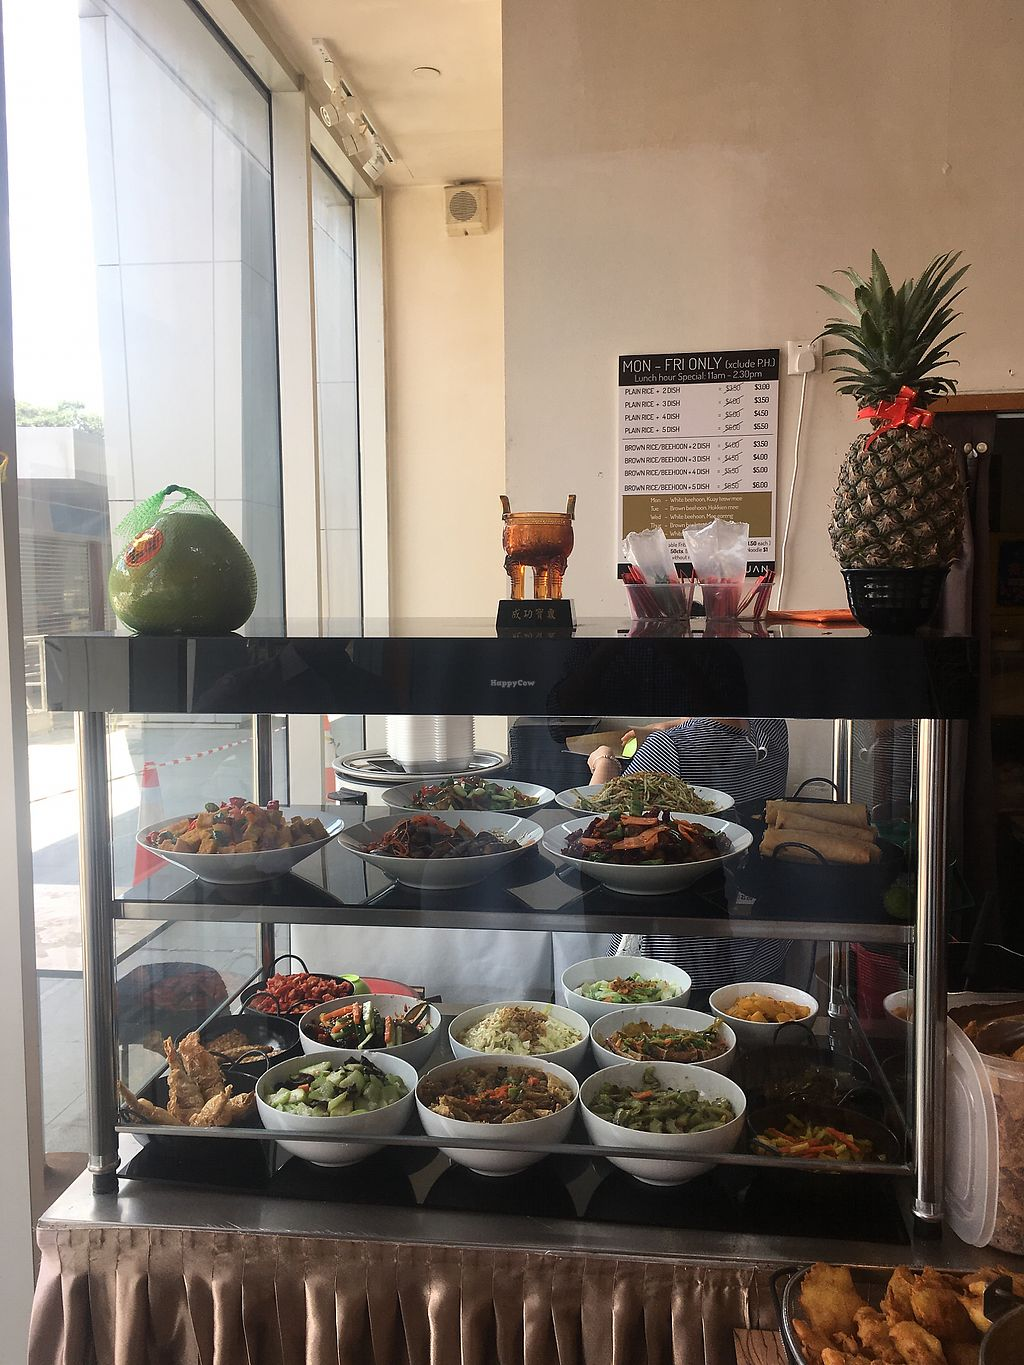 """Photo of Yuan Vegetarian Bistro  by <a href=""""/members/profile/BernardKoh"""">BernardKoh</a> <br/>Yuan Bistro has a new decor :) <br/> February 20, 2018  - <a href='/contact/abuse/image/43835/361558'>Report</a>"""